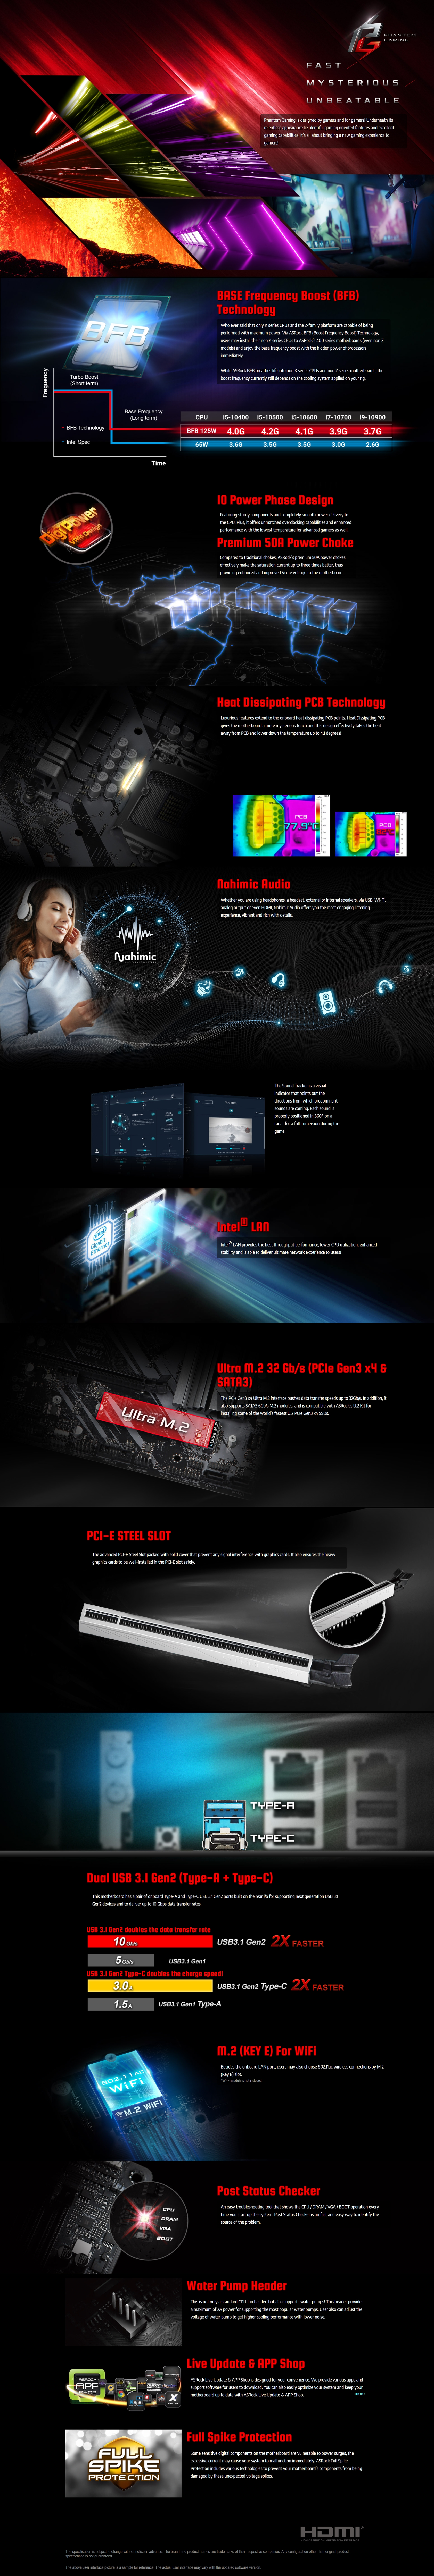 A large marketing image providing additional information about the product ASRock Z490 Phantom Gaming 4 LGA1200 ATX Desktop Motherboard - Additional alt info not provided